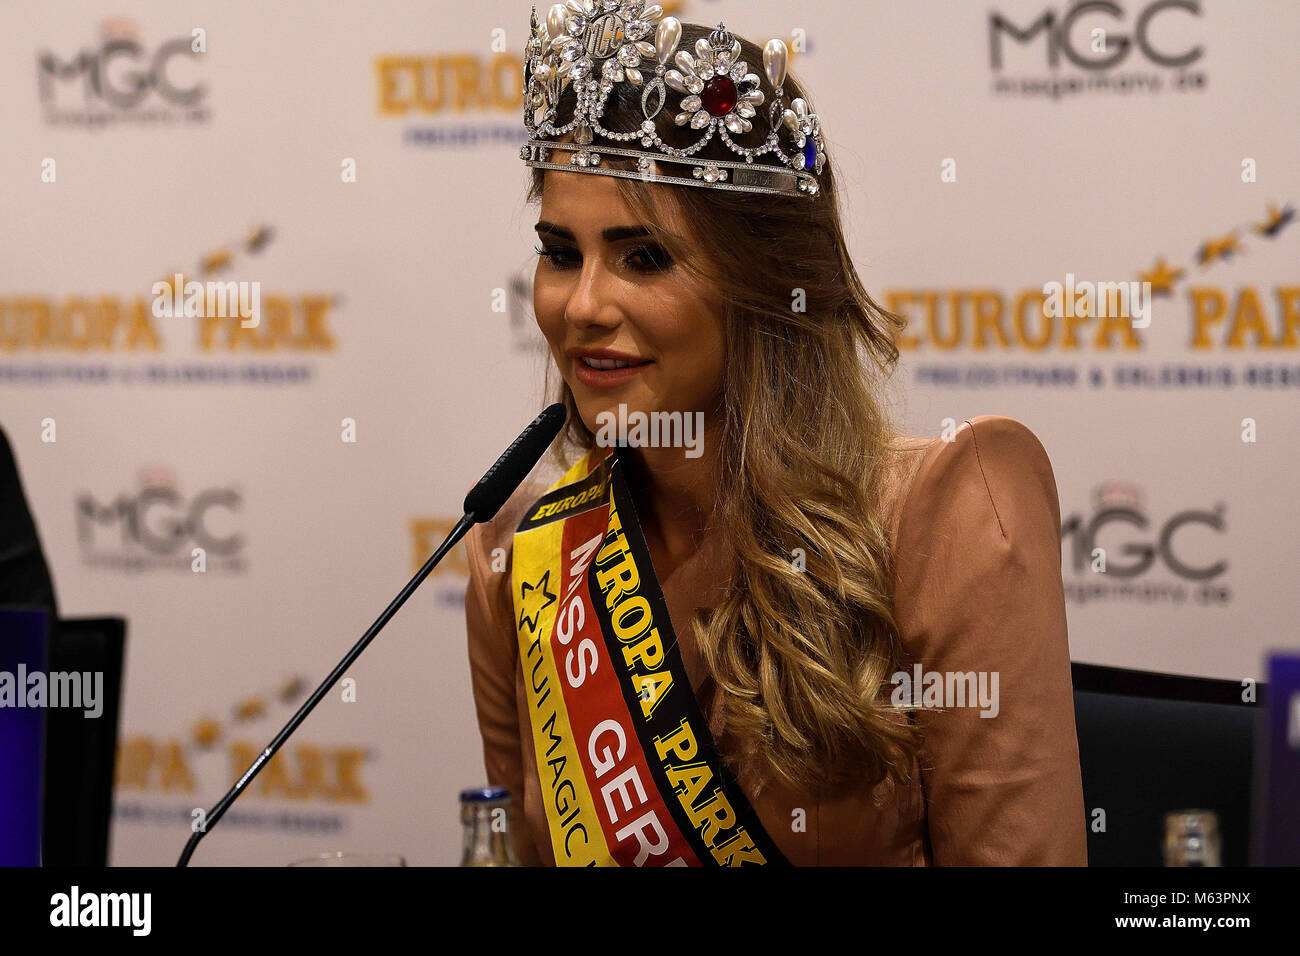 February 25, 2018 - The newly elected Miss Germany, Anahita Rehbein, delivers a press conference to media representatives - Stock Image